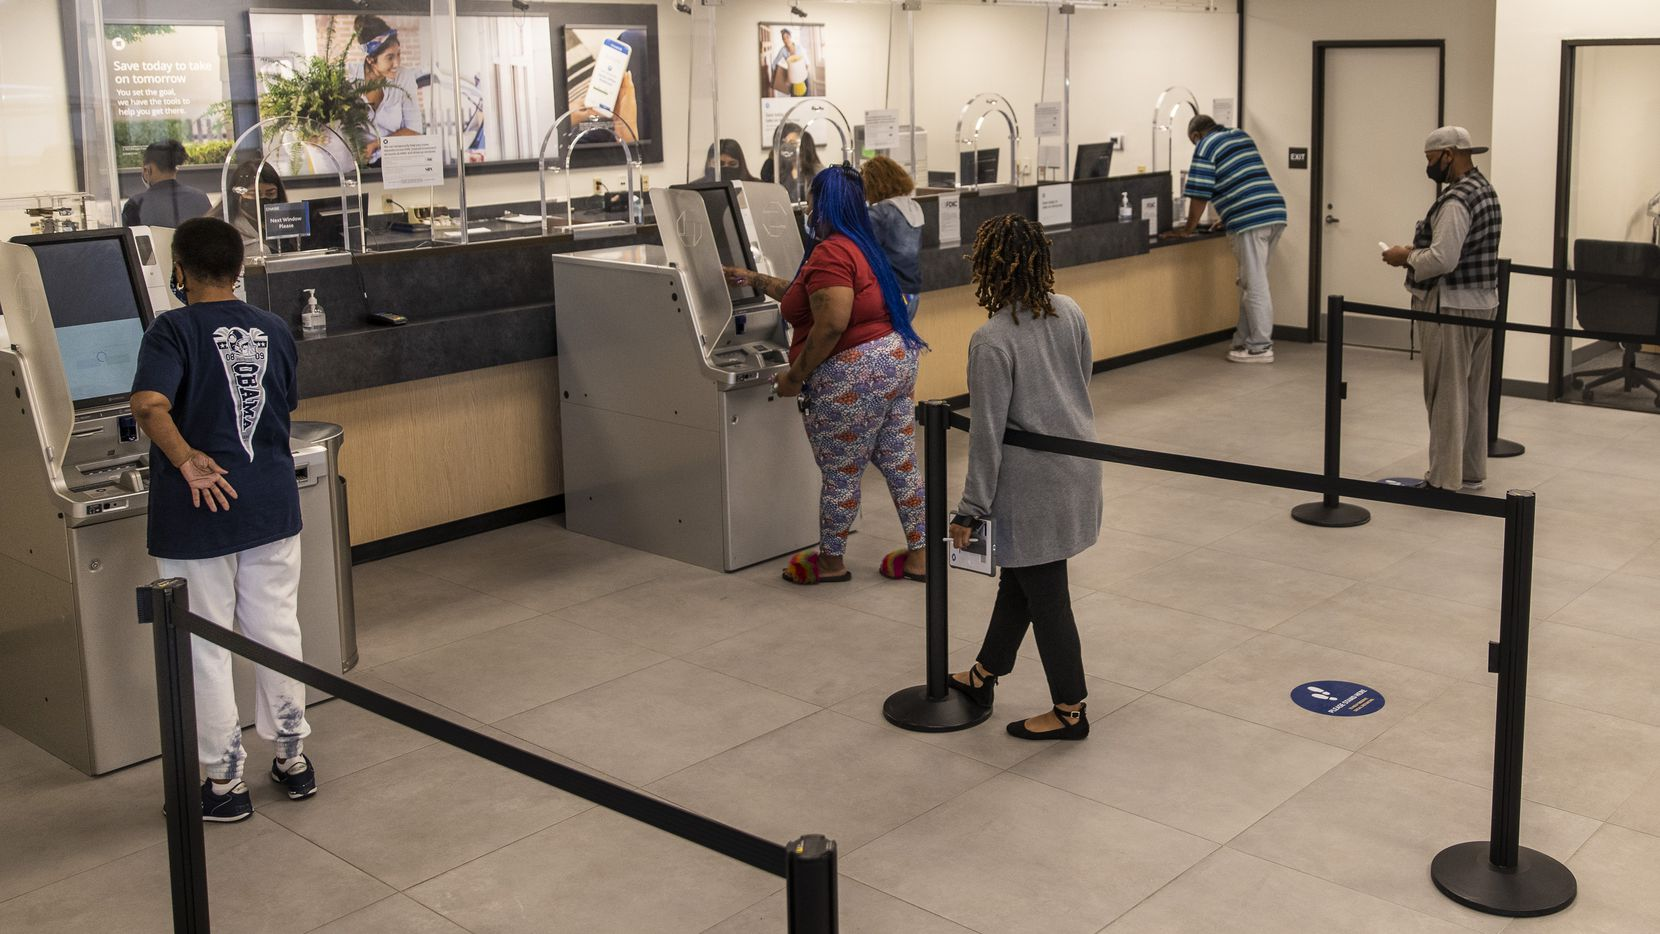 Local residents wait in line to meet with bankers at the new Chase Community Banking Center in the Oak Cliff neighborhood of Dallas on Wednesday.